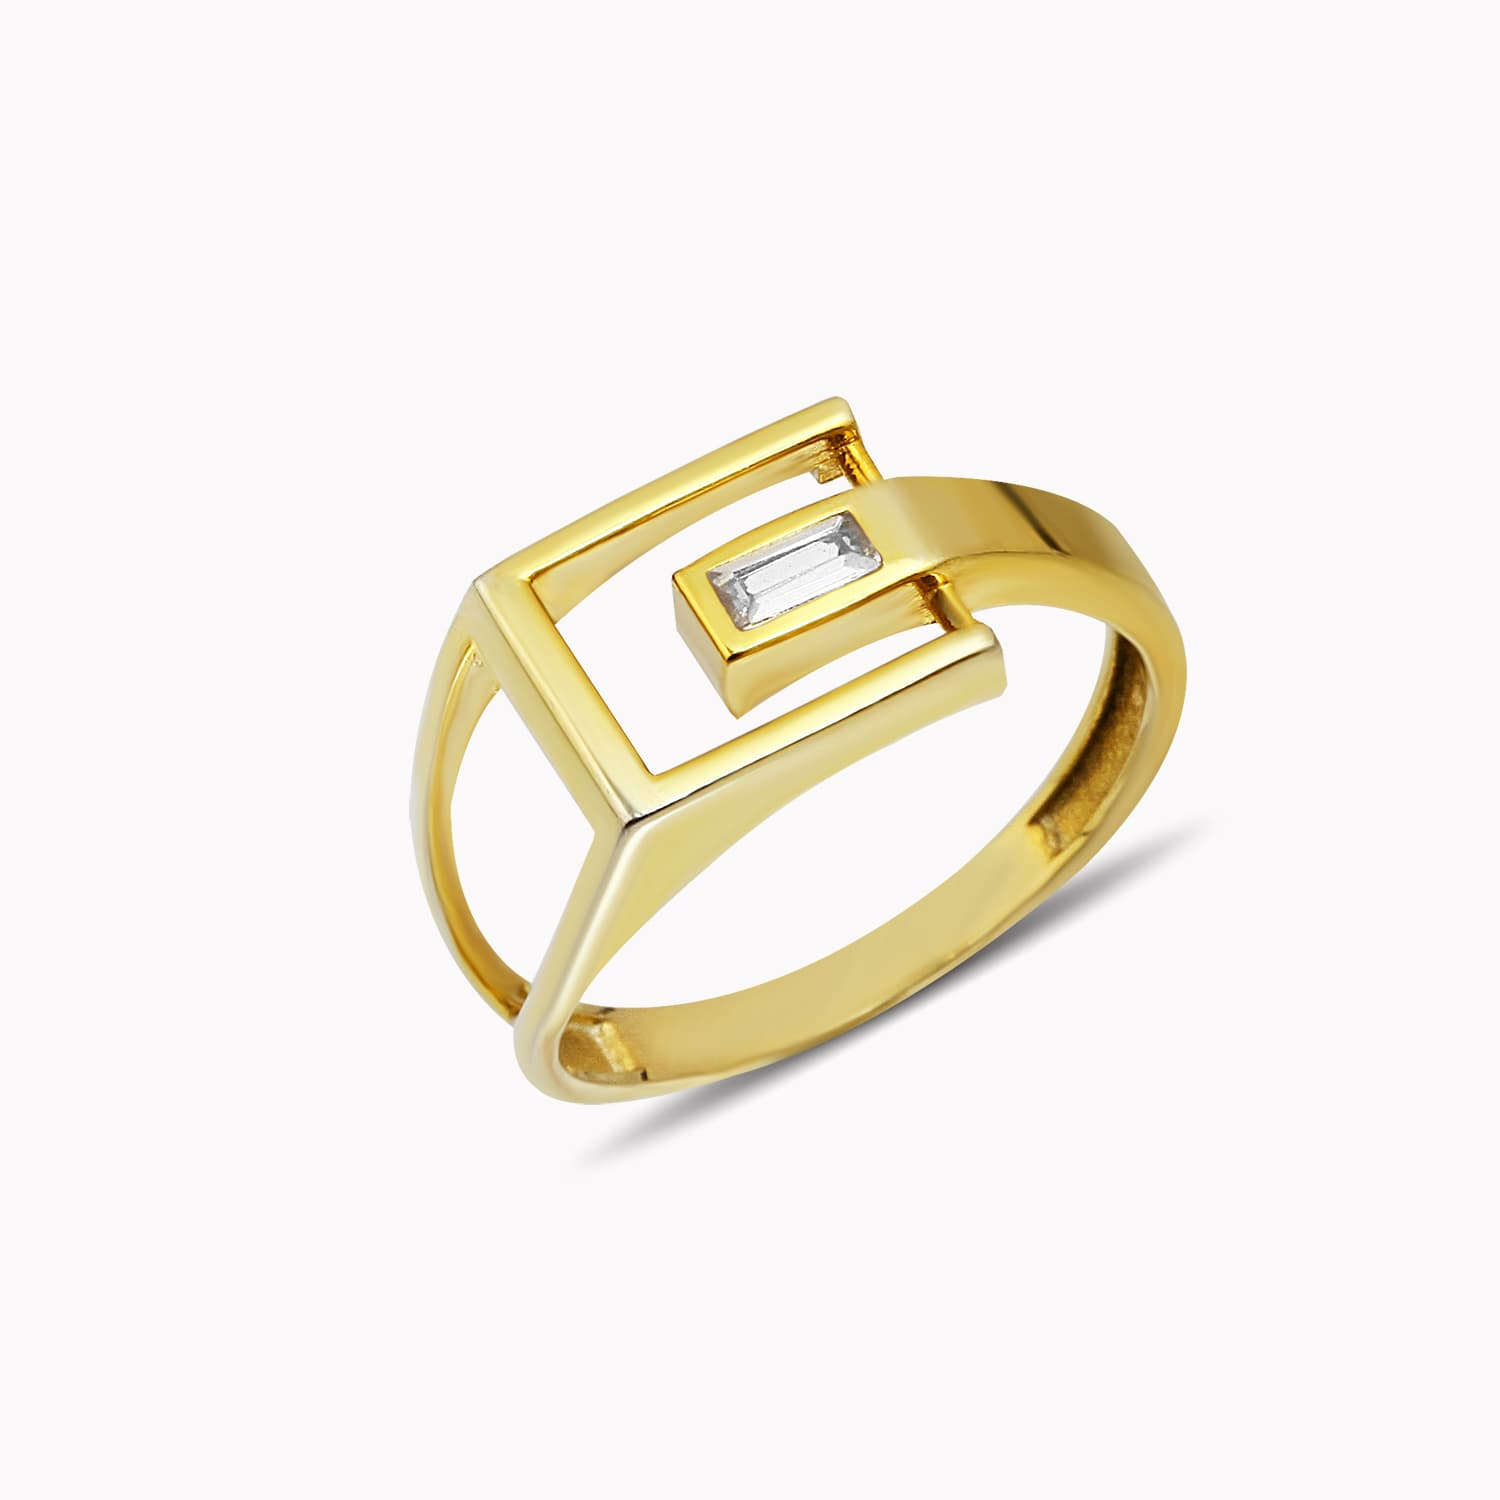 gold plated ring - ring with colored stone